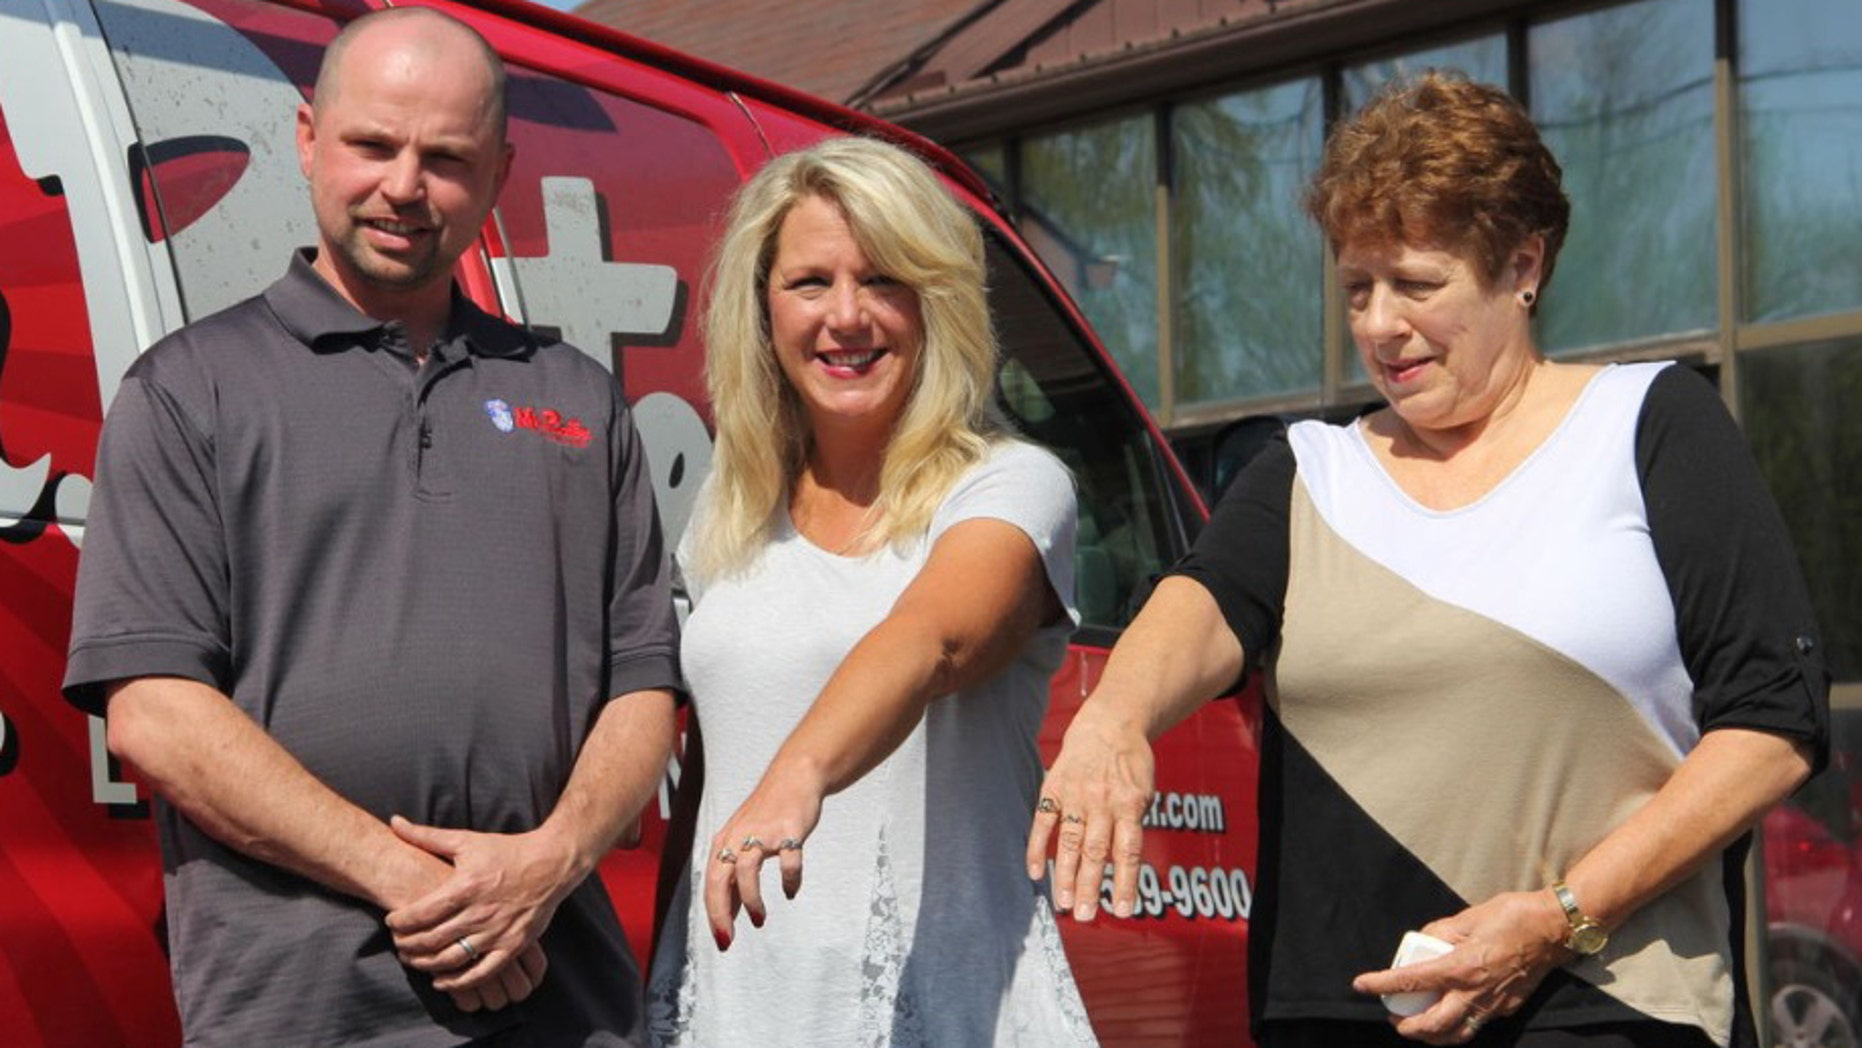 Trent Dawson, left, is pictured here with Cherie Kissiar, center, and Connie Keck, right, after giving them back their long-lost class rings.